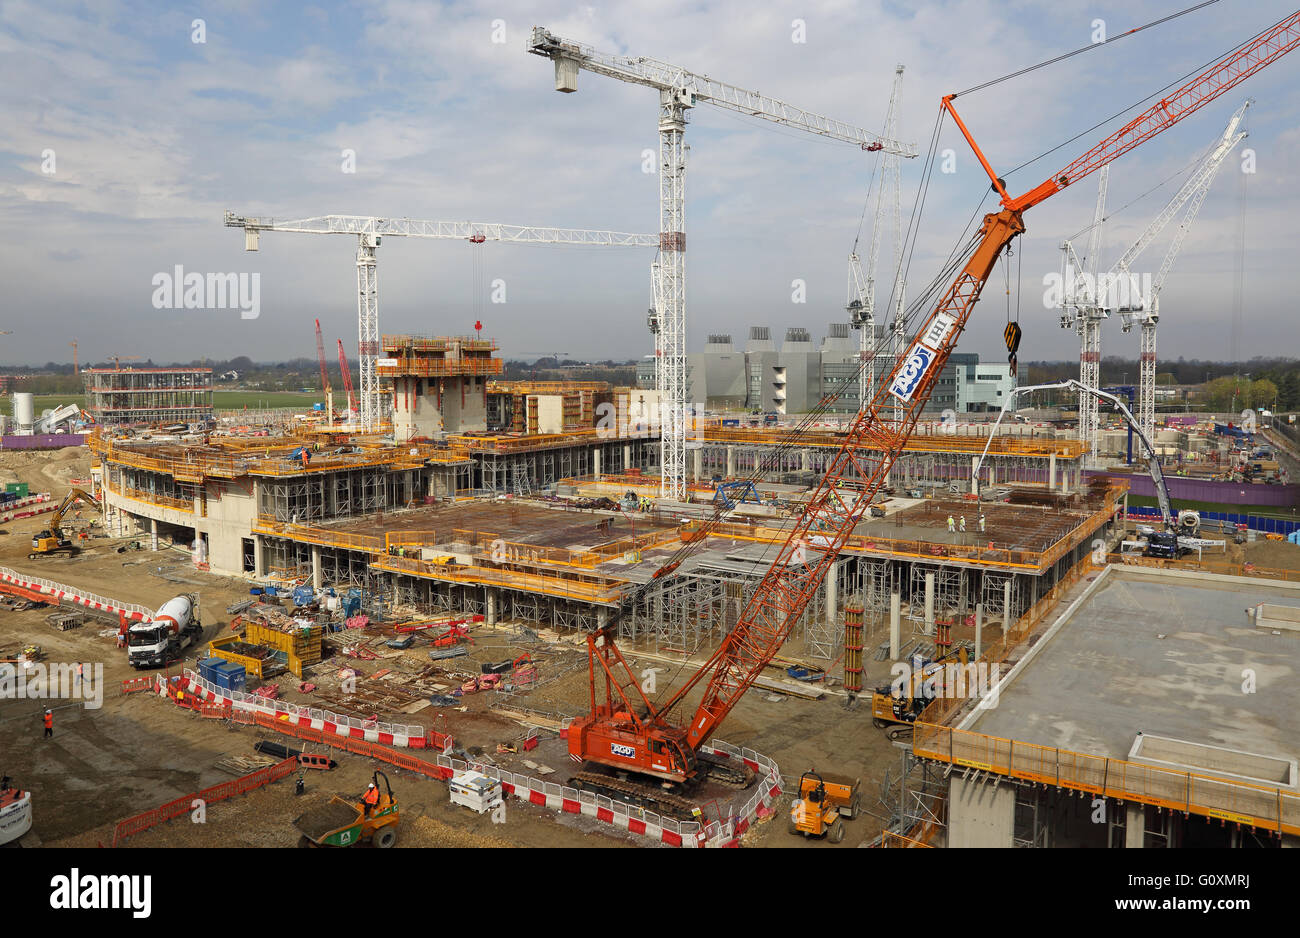 Construction of the new Papworth Hospital in Cambridge, UK. High level view from an adjacent building. Shows new - Stock Image